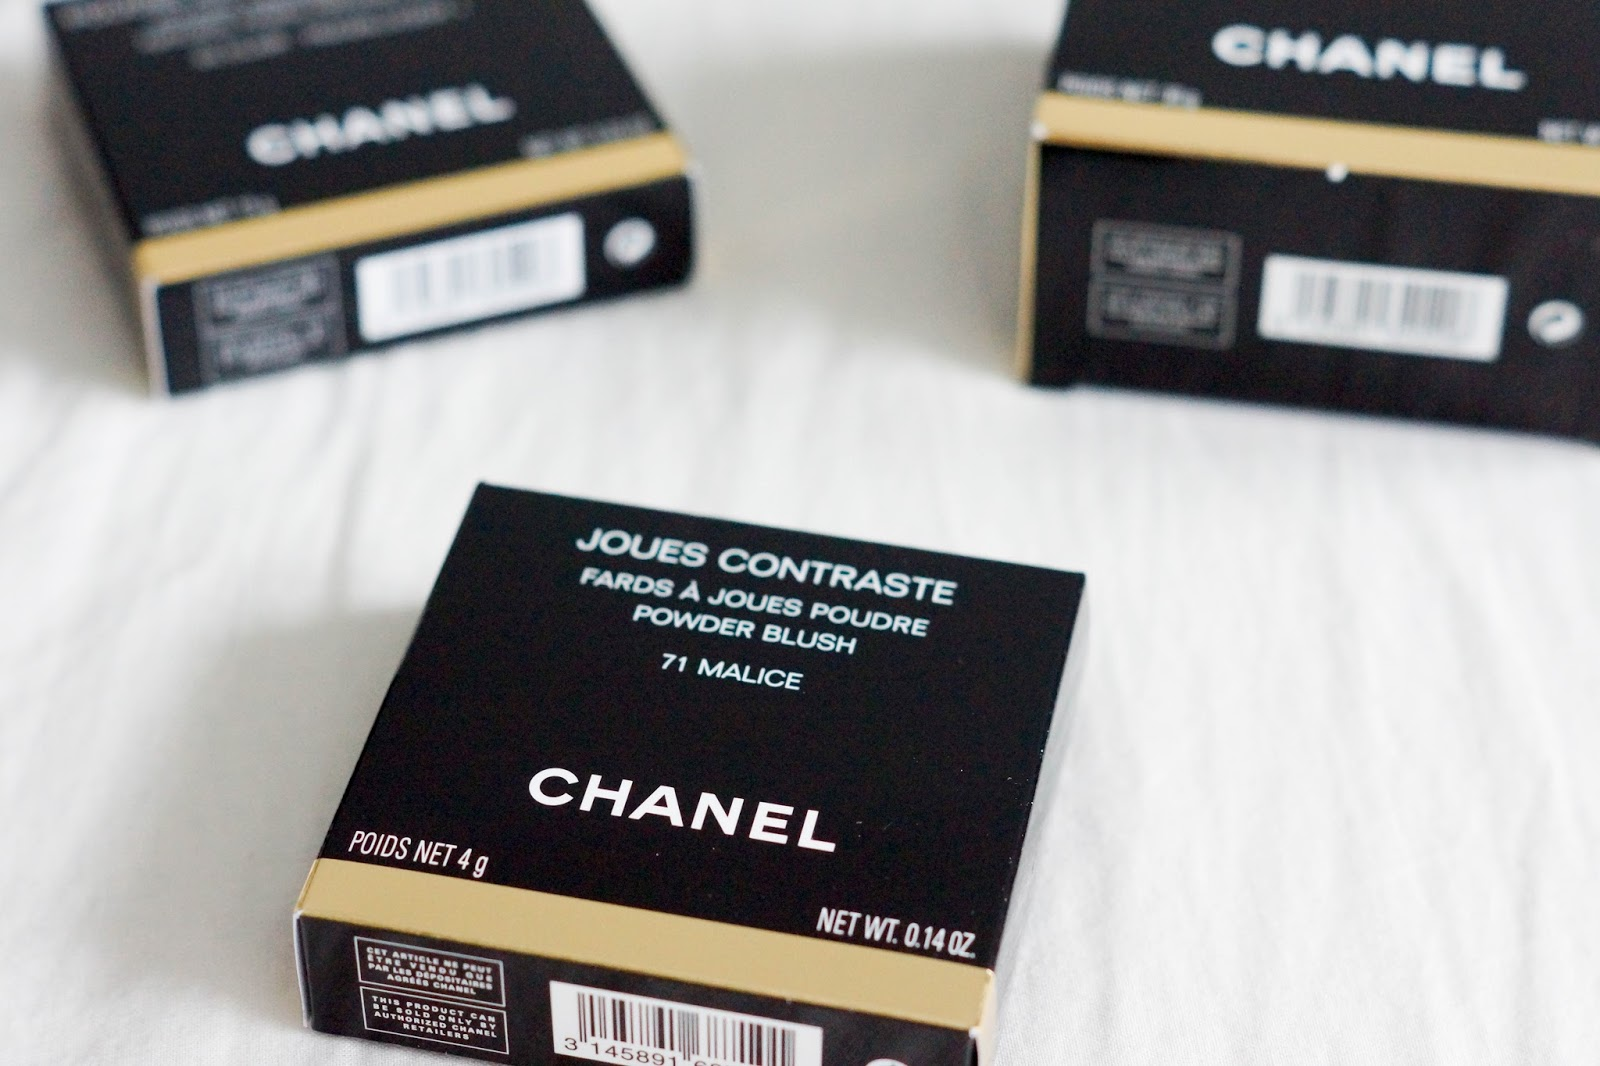 CHANEL MAKEUP REVIEW